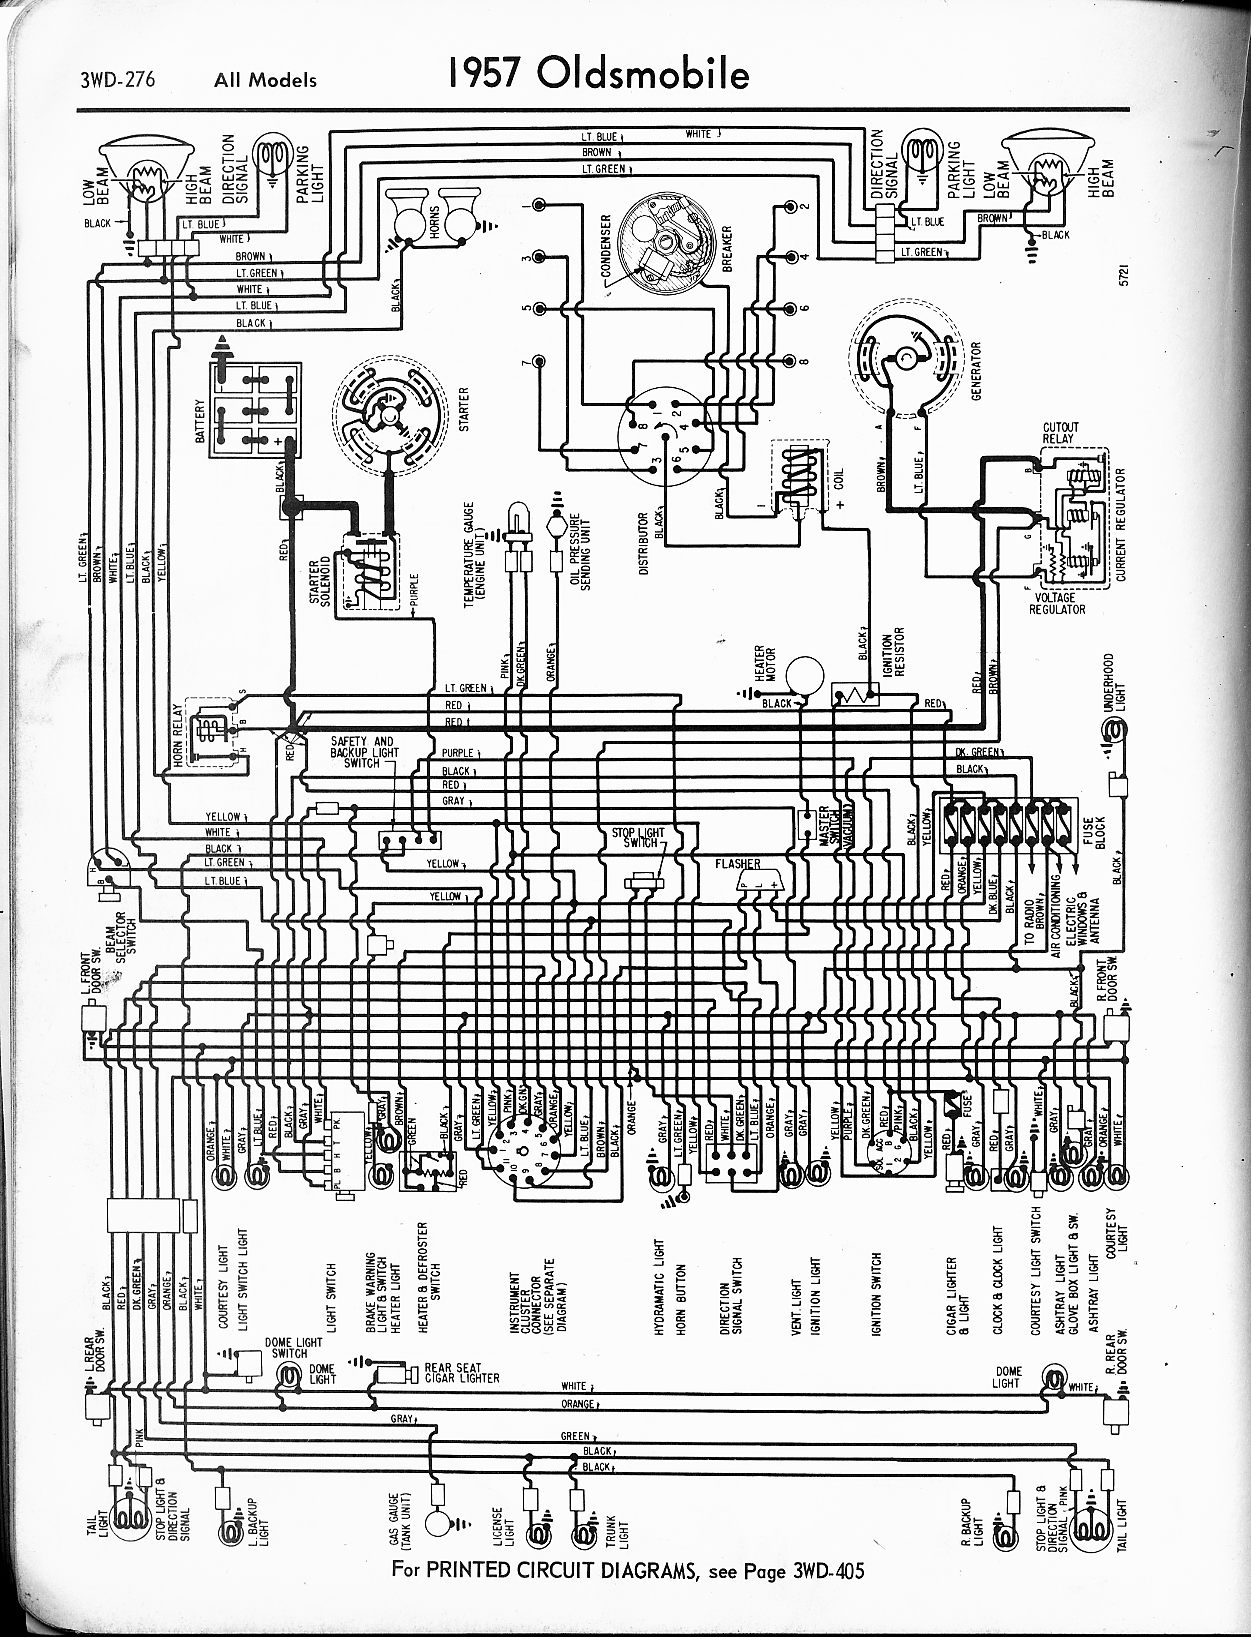 MWire5765 276 oldsmobile wiring diagrams the old car manual project  at readyjetset.co